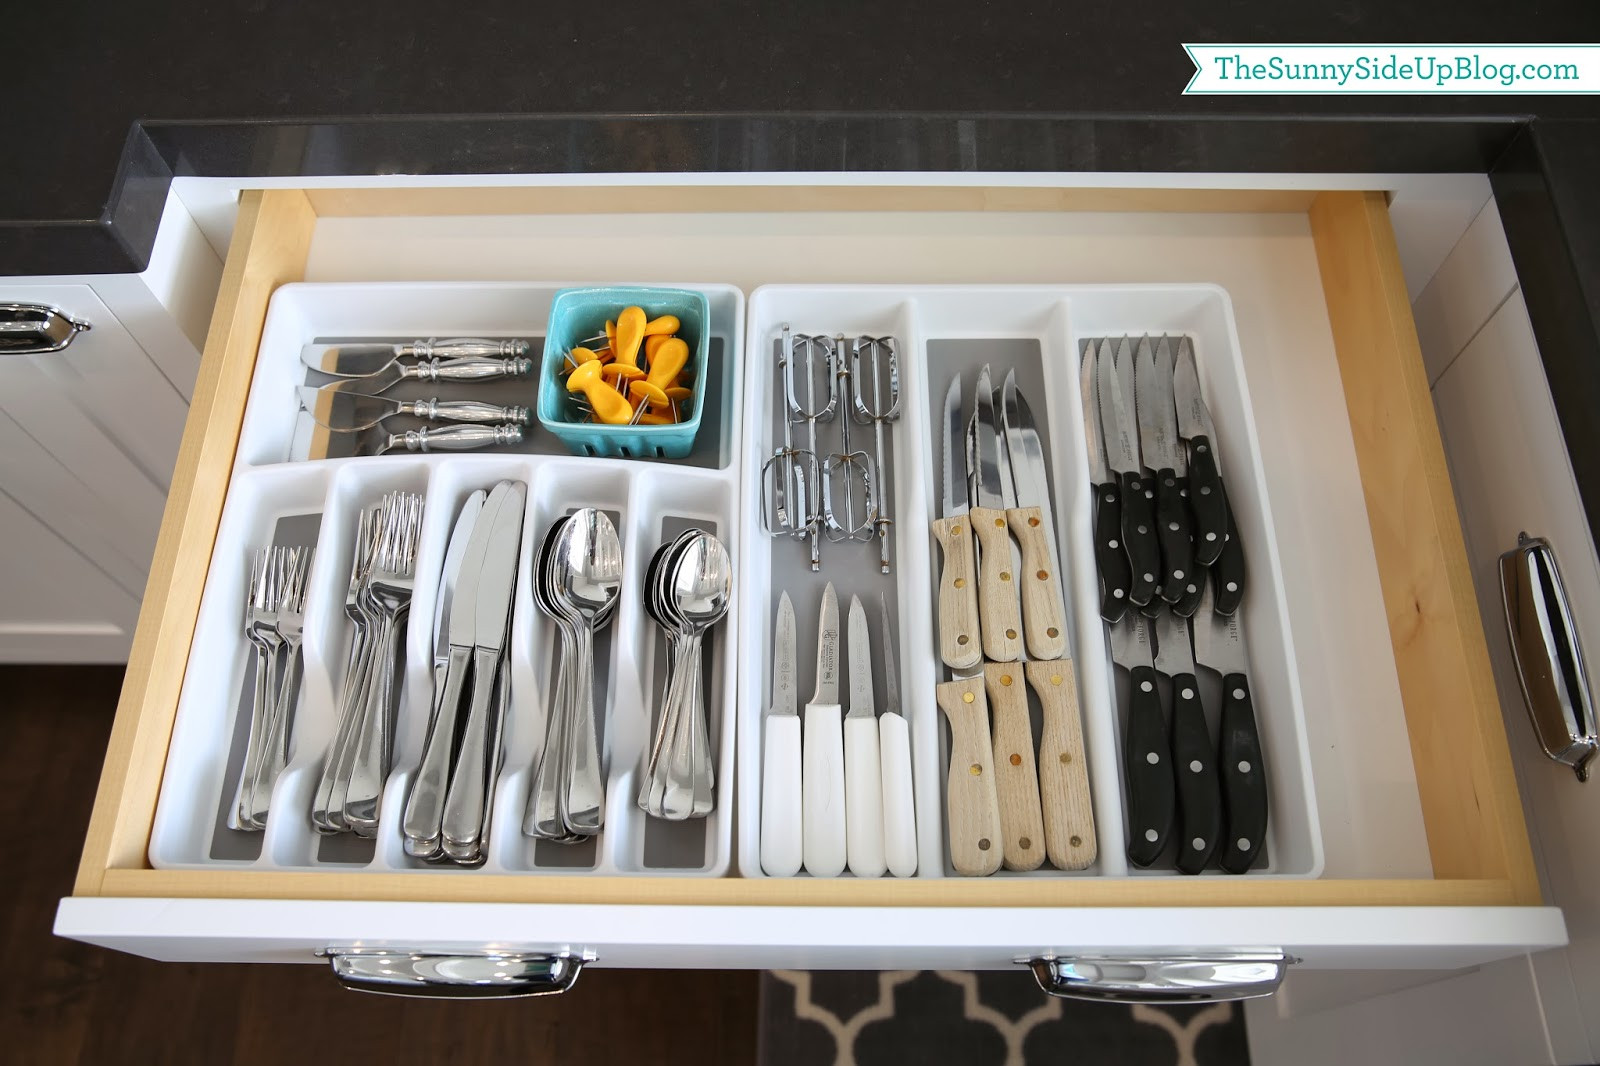 Best ideas about Silverware Storage Ideas . Save or Pin Organized Silverware The Sunny Side Up Blog Now.